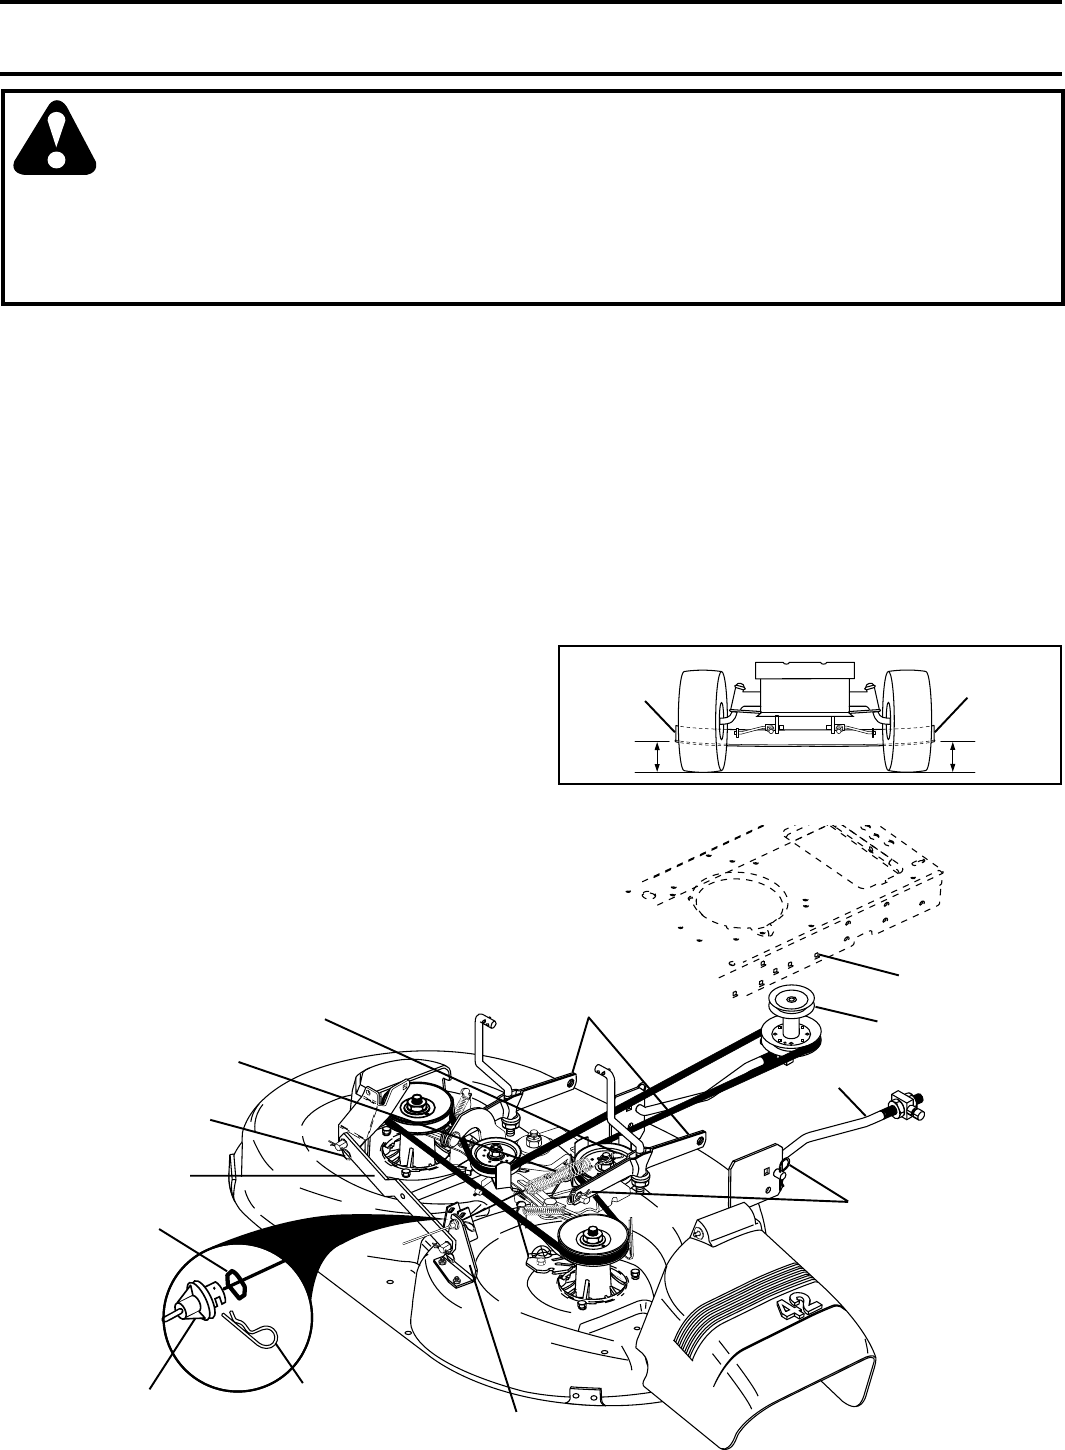 Page 19 of Weed Eater Lawn Mower S165H42A User Guide